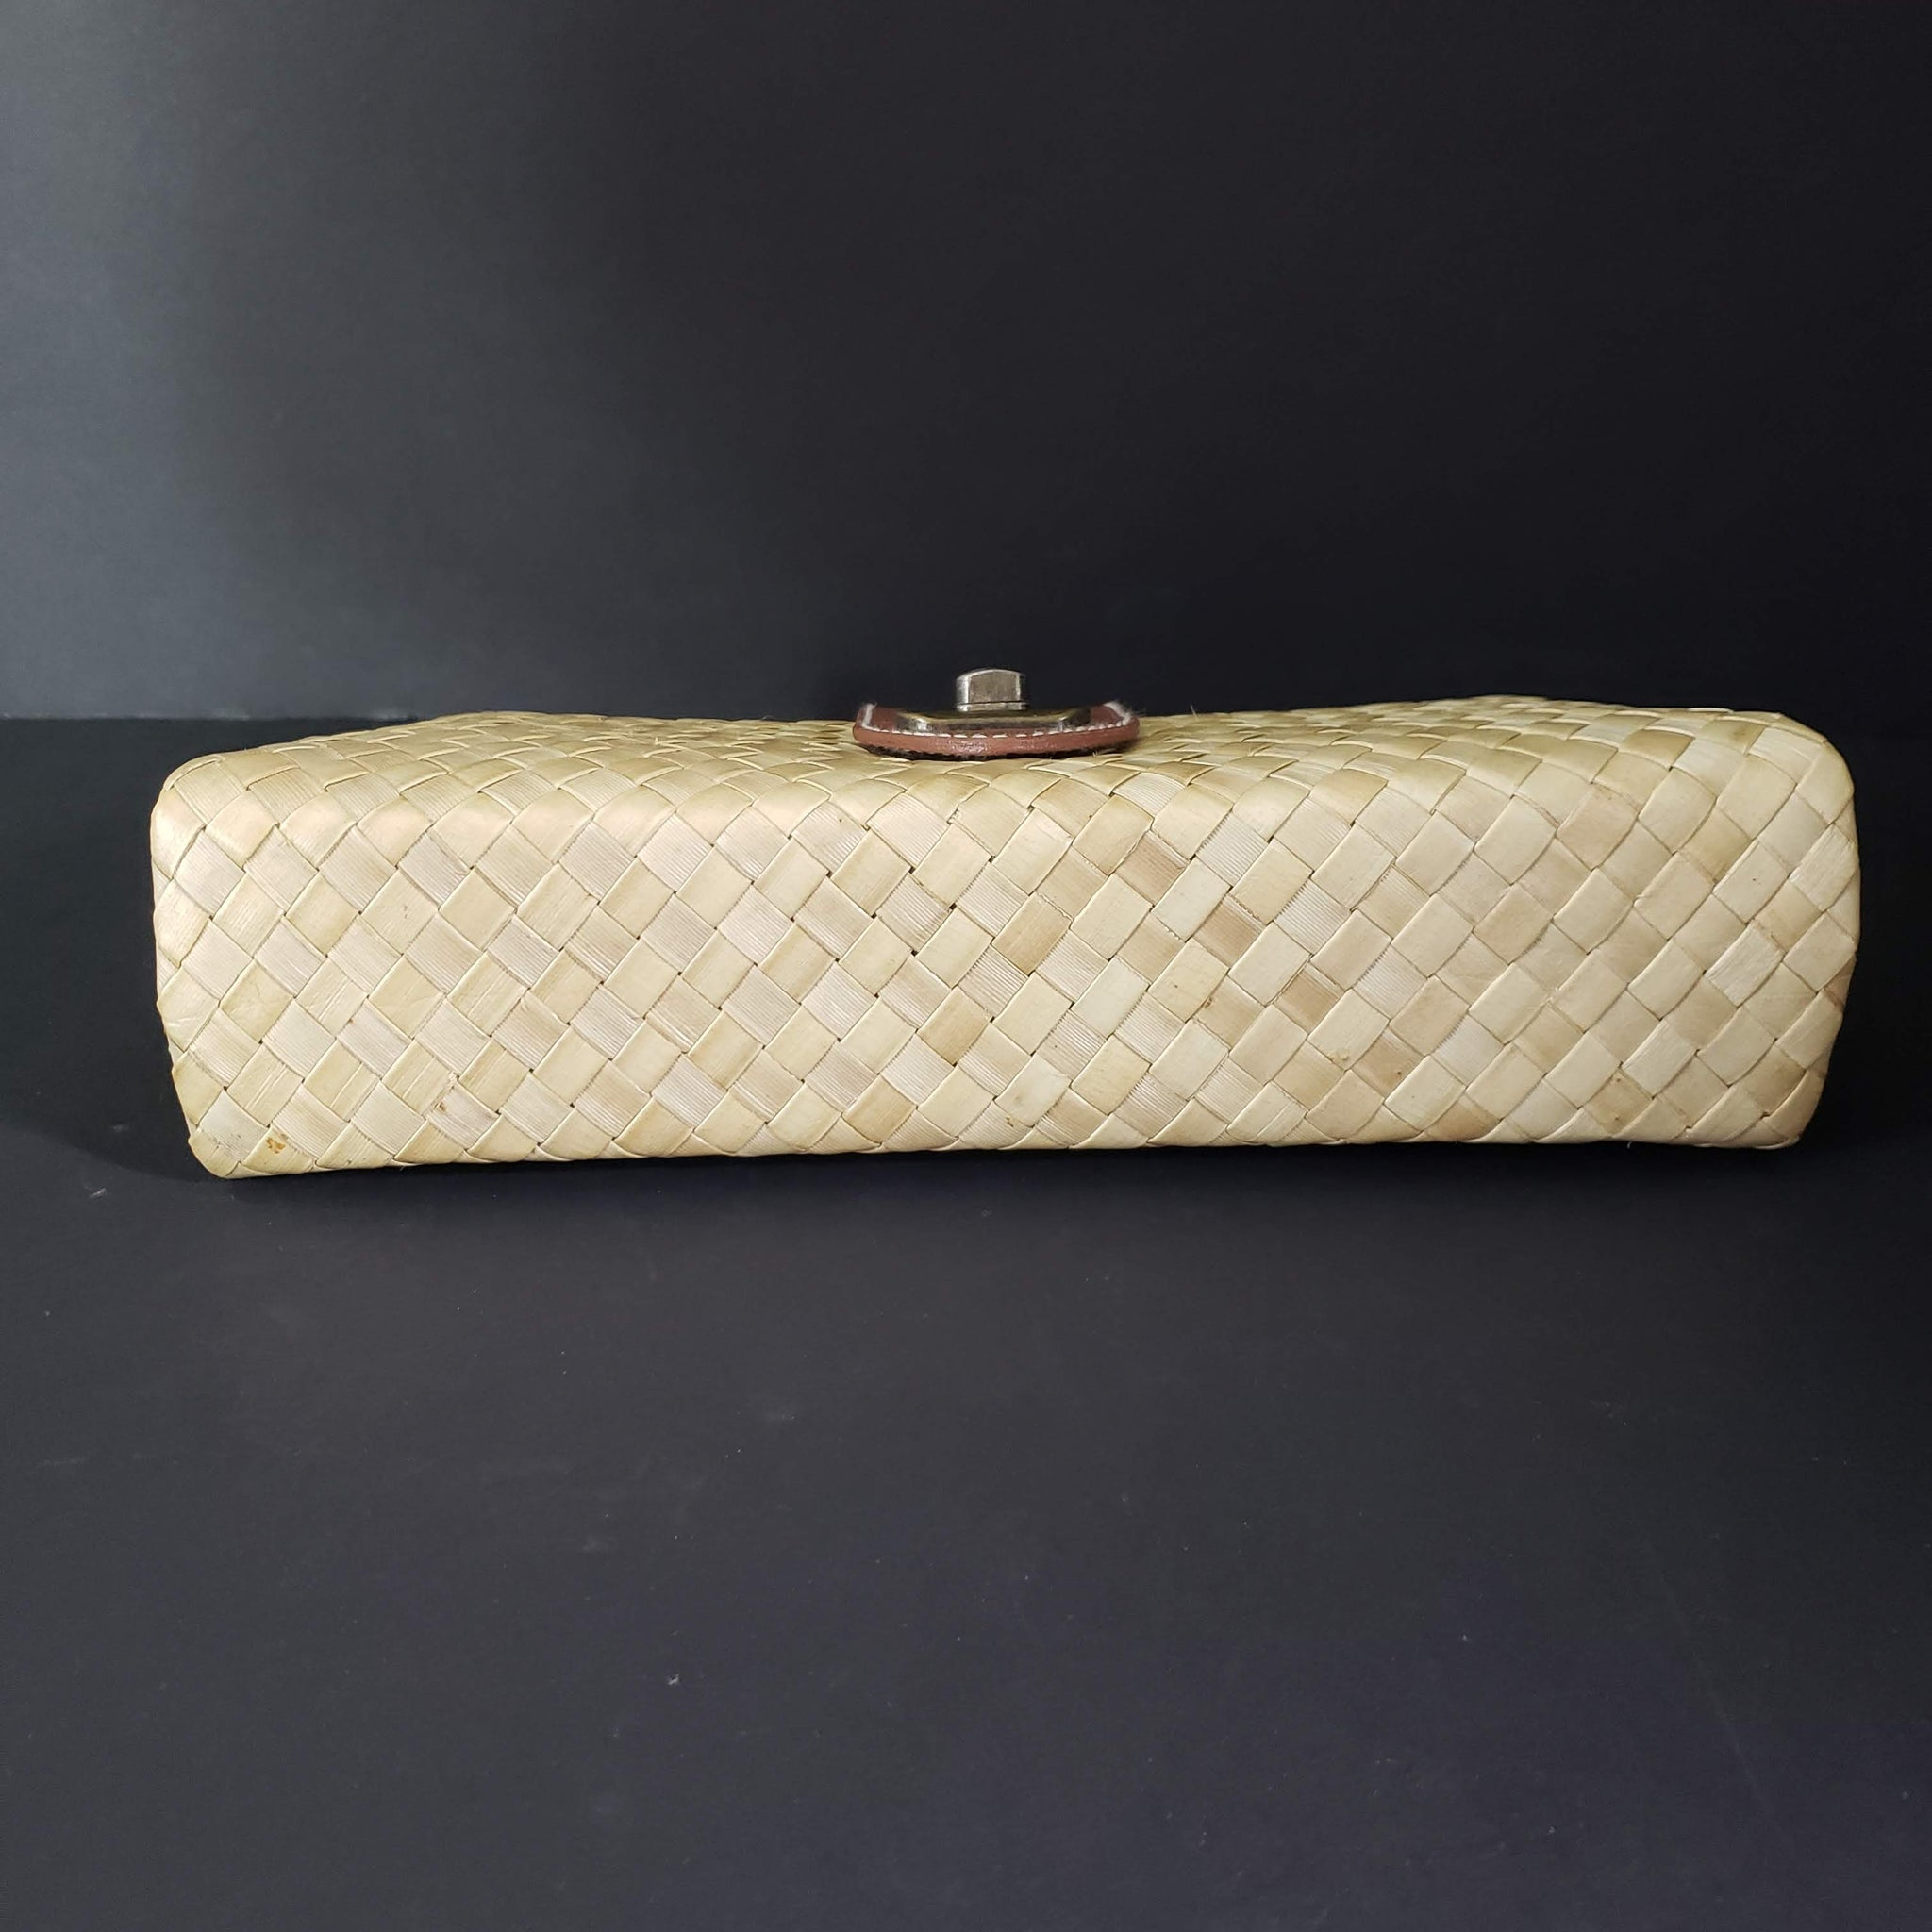 Aranaz Wicker Straw Clutch Bag Basketweave Woven